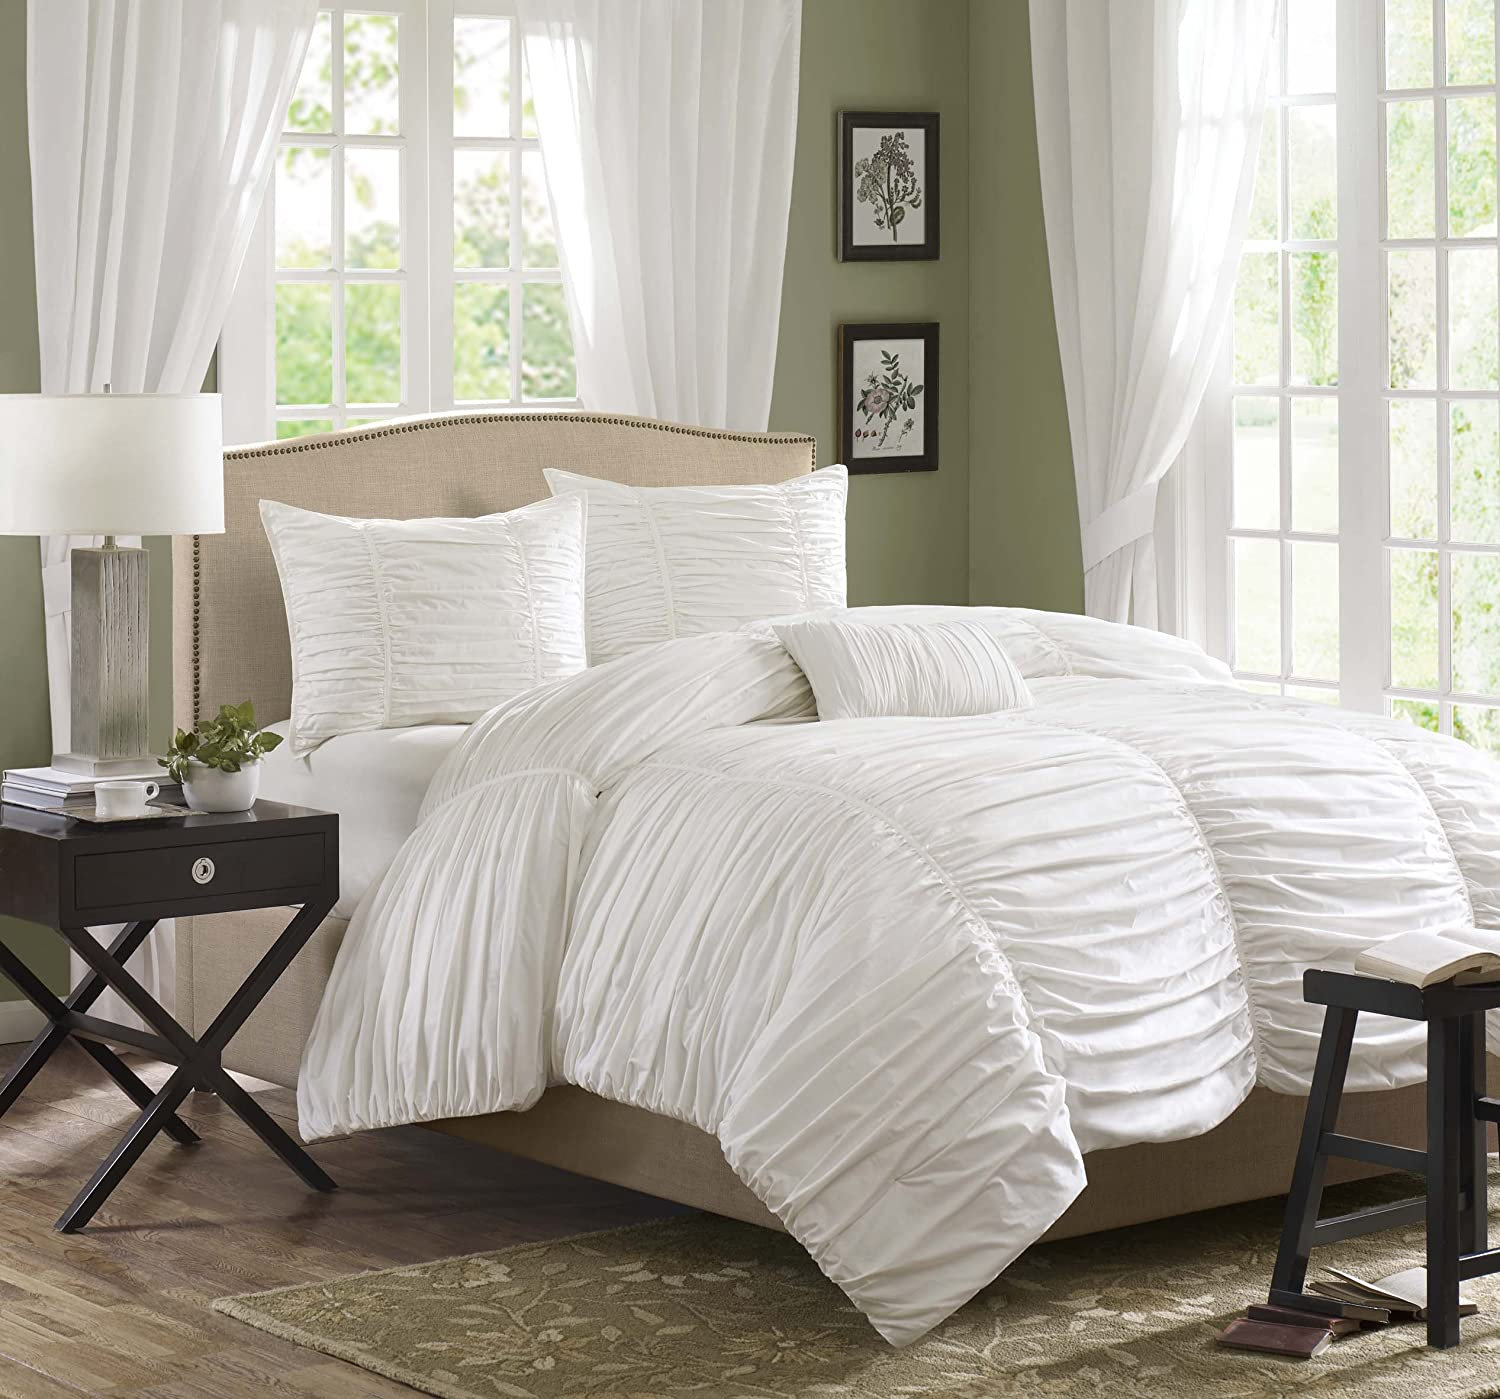 Madison Park Delancey Queen Size Bed Comforter Set - White, Ruched Pleating  – 4 Pieces Bedding Sets – 100% Cotton Percale Bedroom Comforters